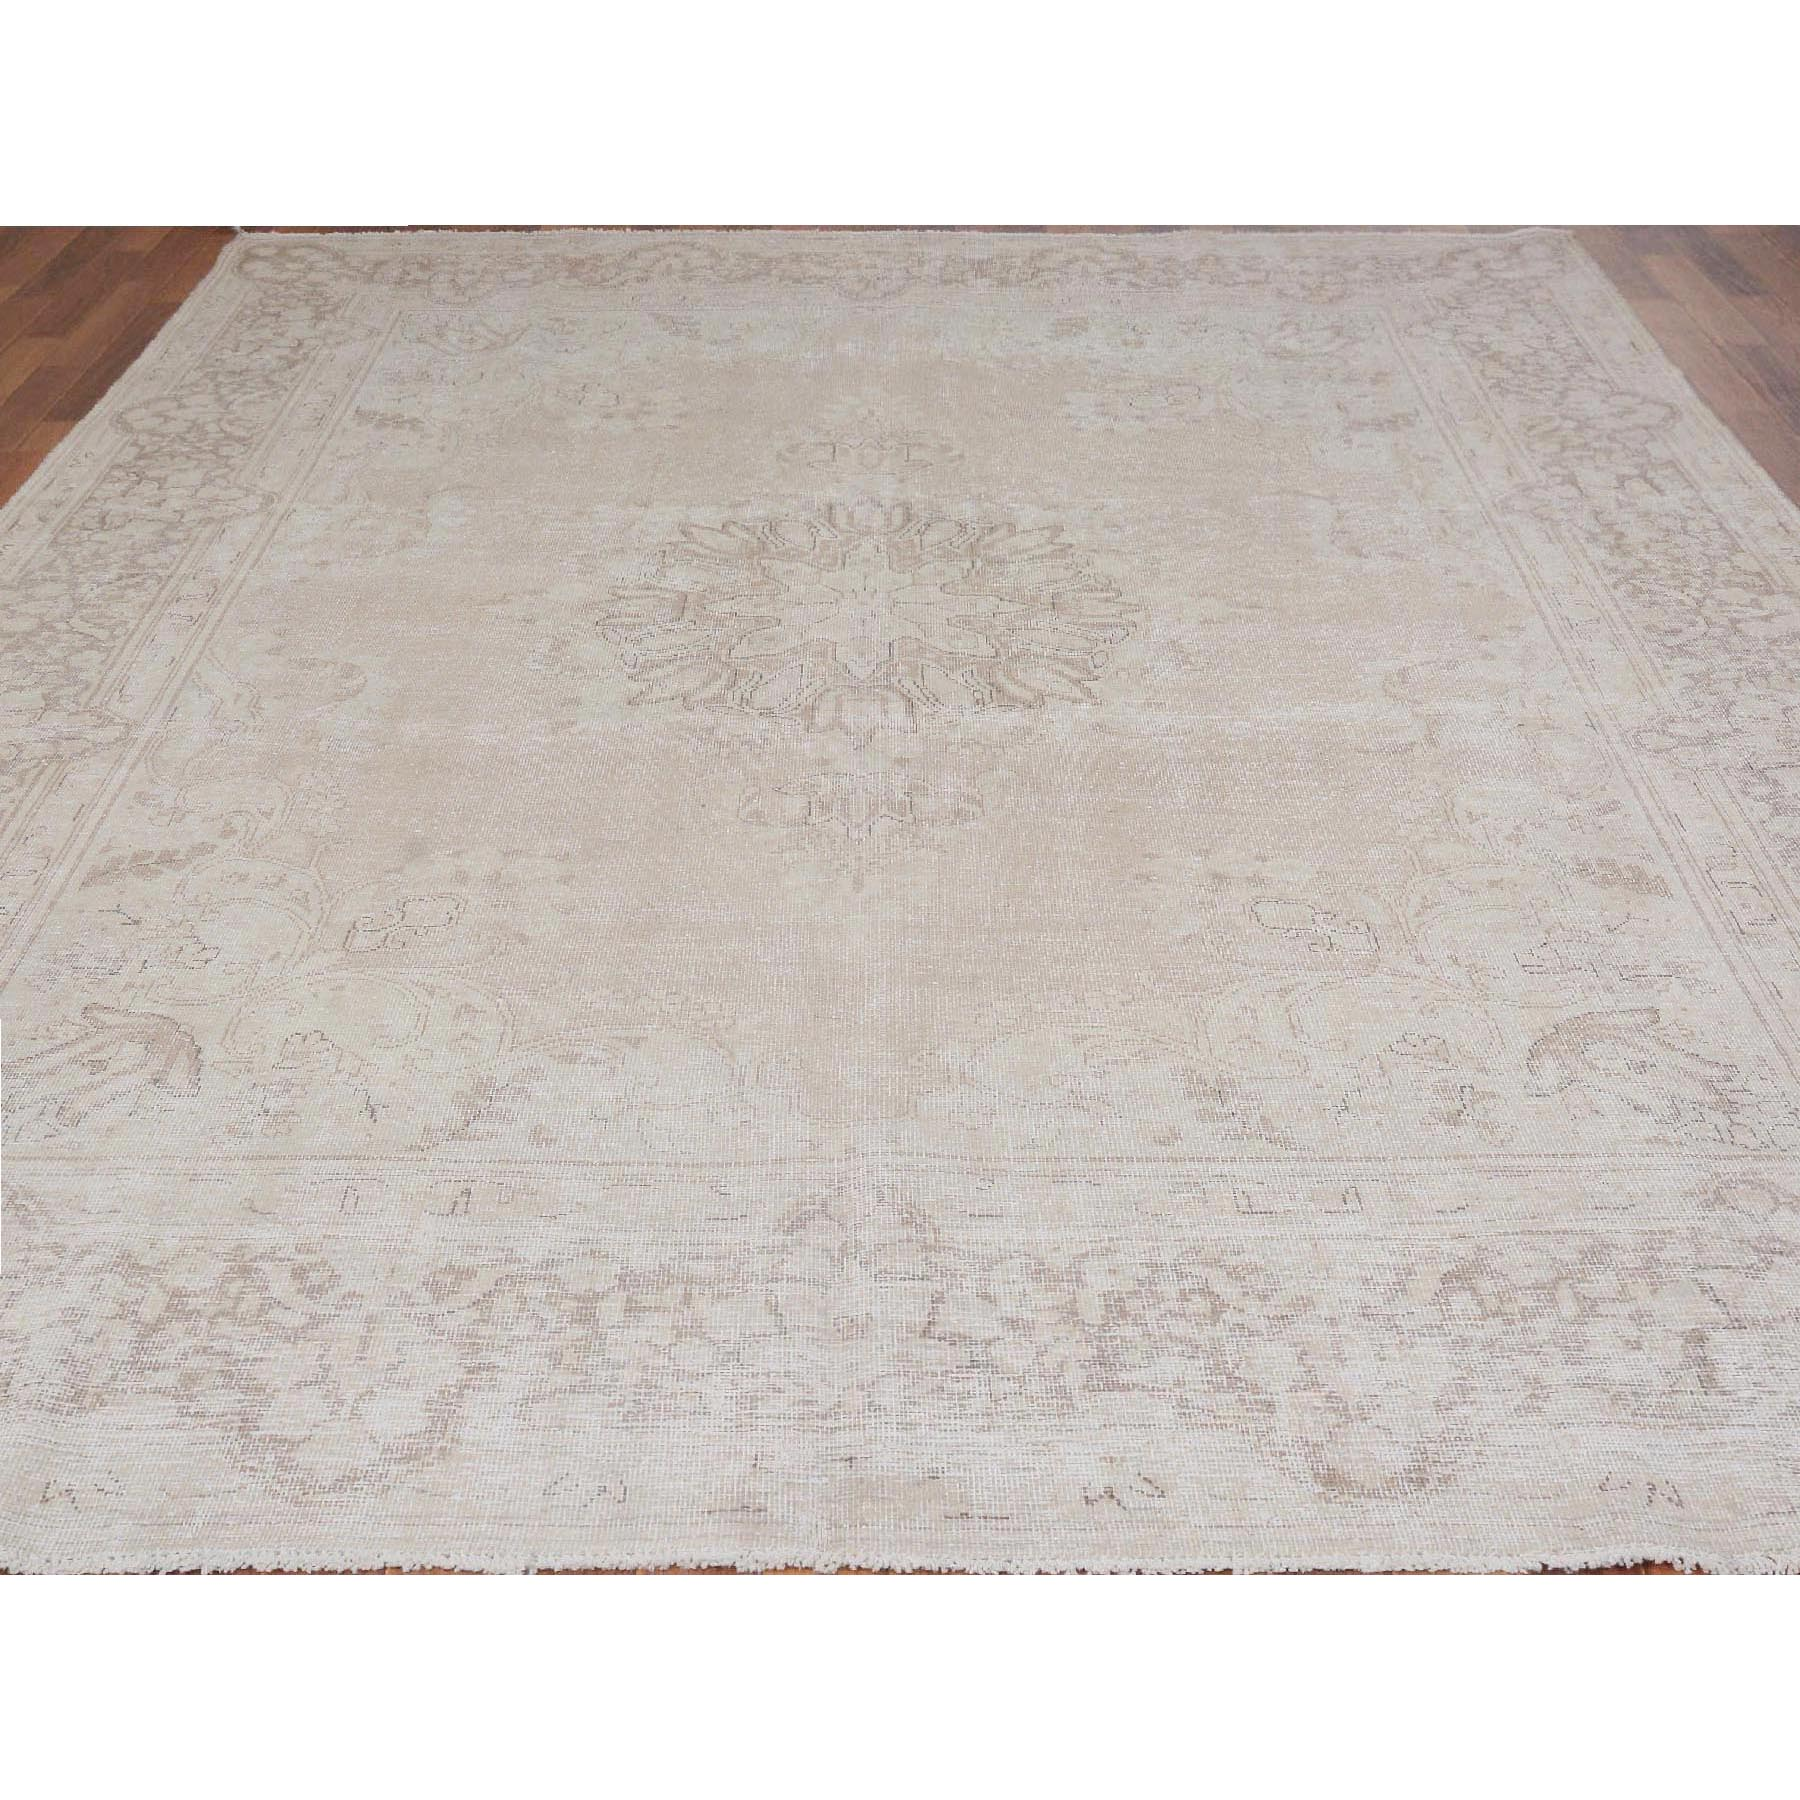 "8'9""x11'7"" White Vintage and Worn Down Persian Kerman Hand Woven Pure Wool Oriental Rug"